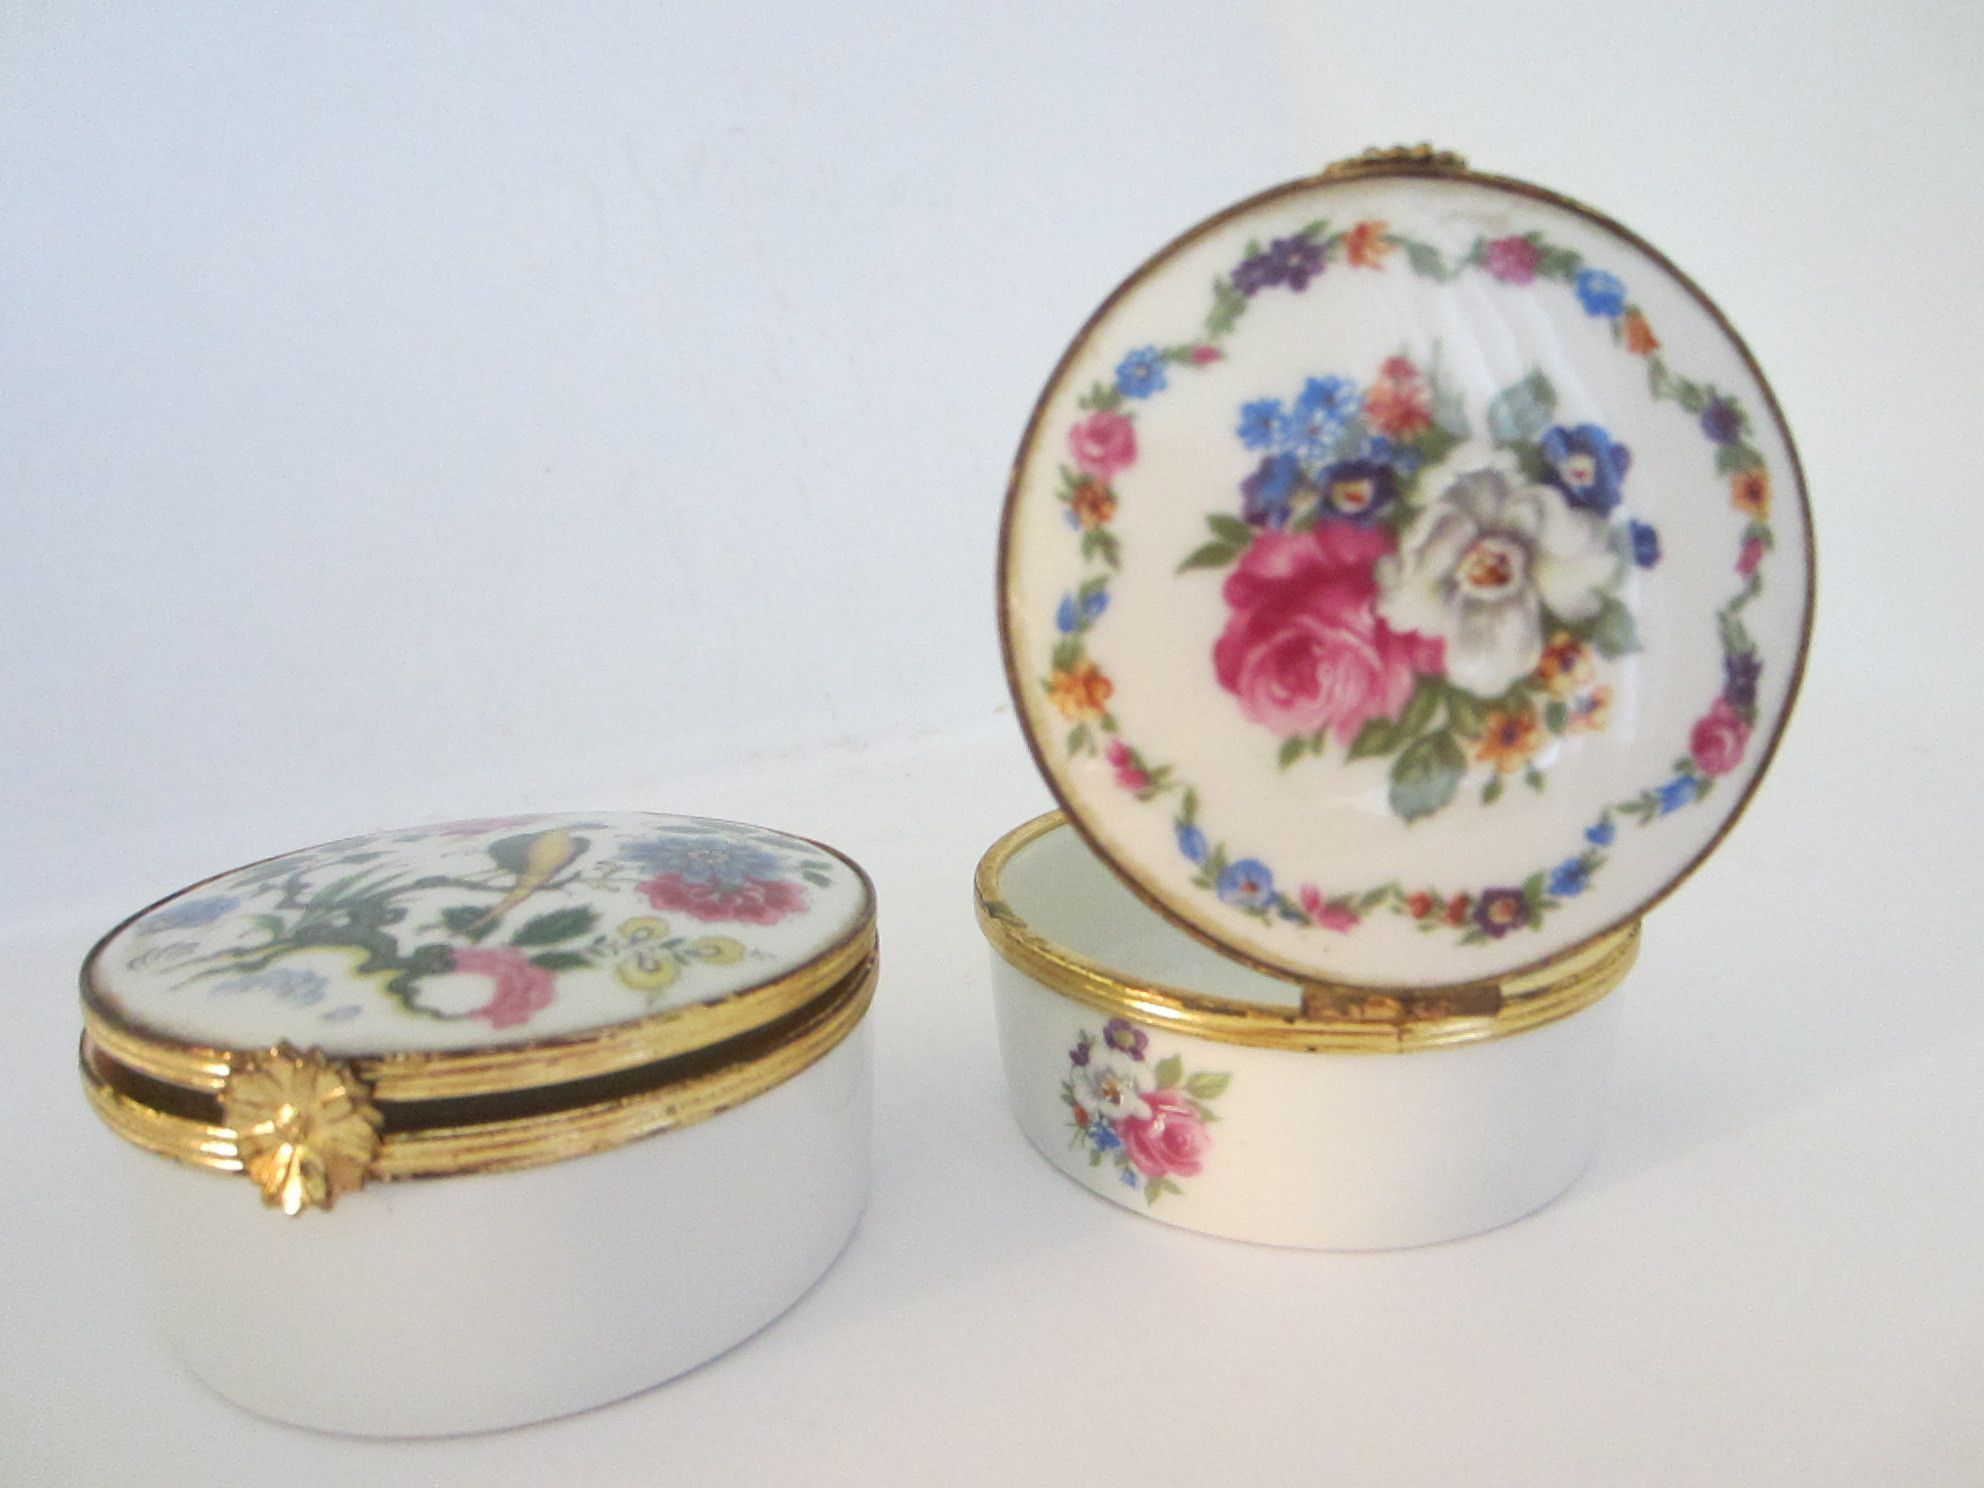 A Notable Highlights Of Two Fabulous Porcelain Trinket Boxes Of Limoges France Slightly Hand Enameled Painted With Exquisite Colors Trinket Boxes Porcelain Antique Boxes